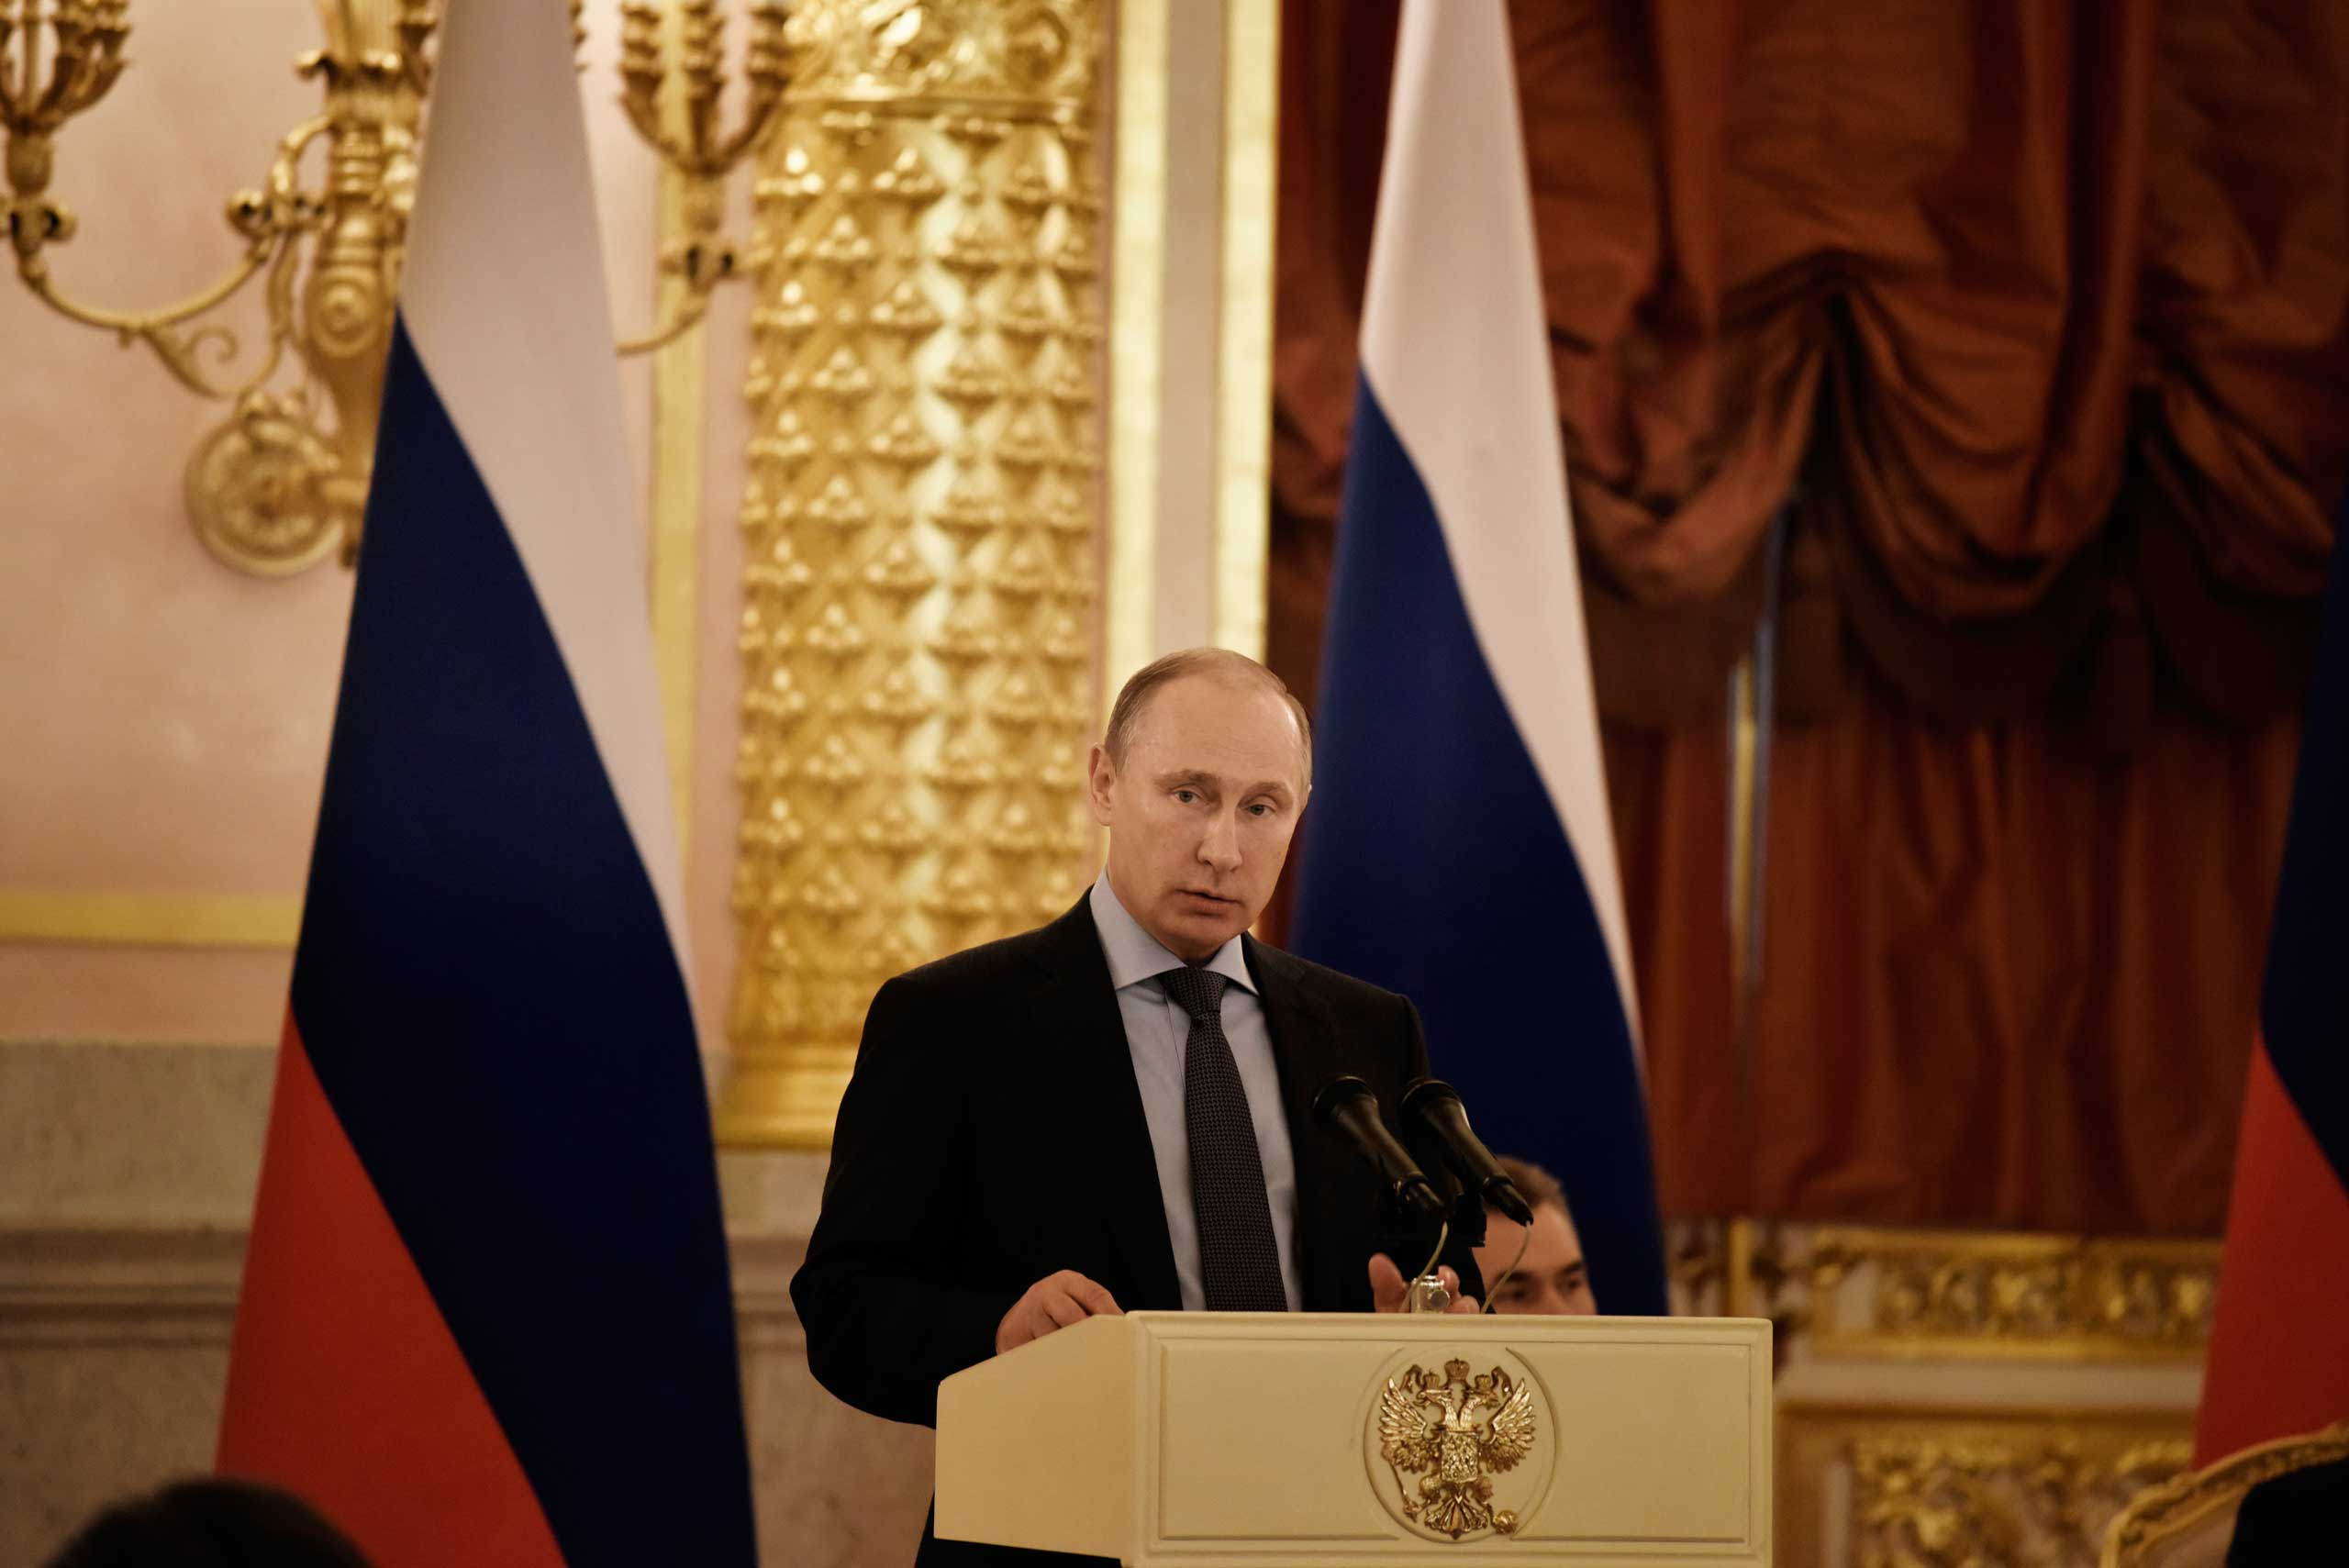 President Vladimir Putin speaks during his meeting with Human Rights activists in the Grand Kremlin Palace, Moscow, Dec. 5, 2014.